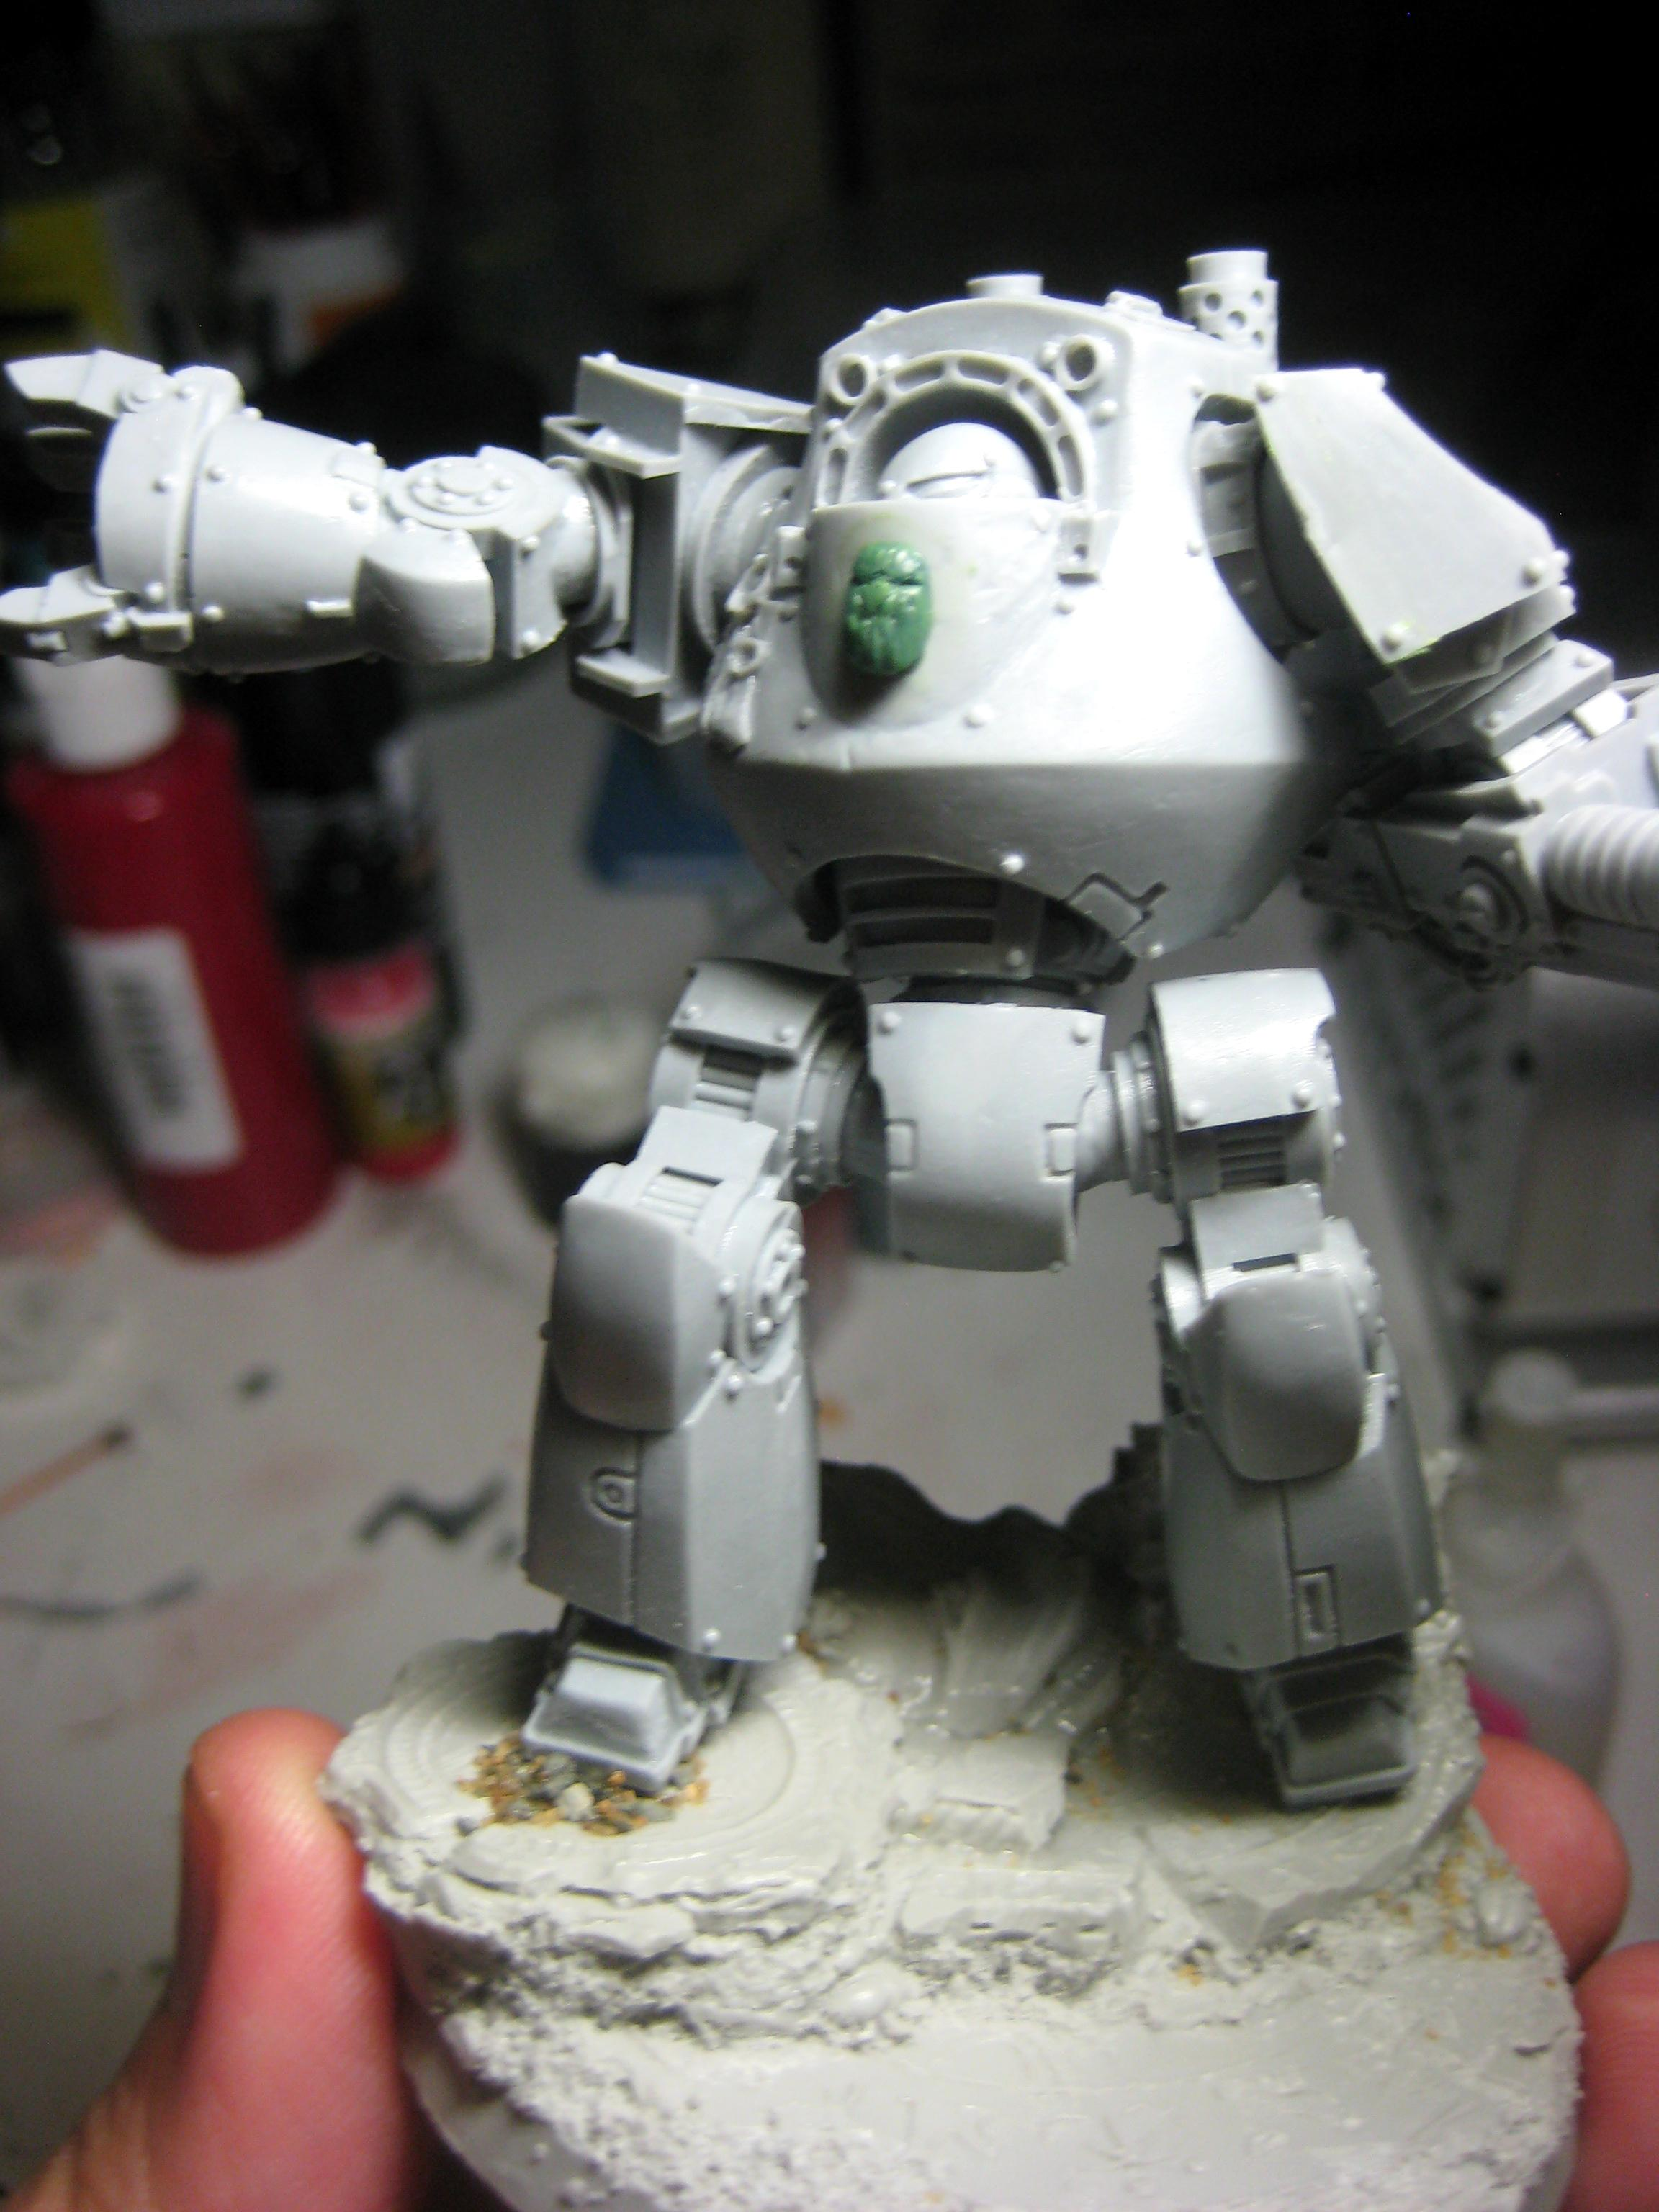 Conversion, Dreadnought, Forge World, Pre Heresy, Space Marines, Thousand Sons, Warhammer 40,000, Work In Progress